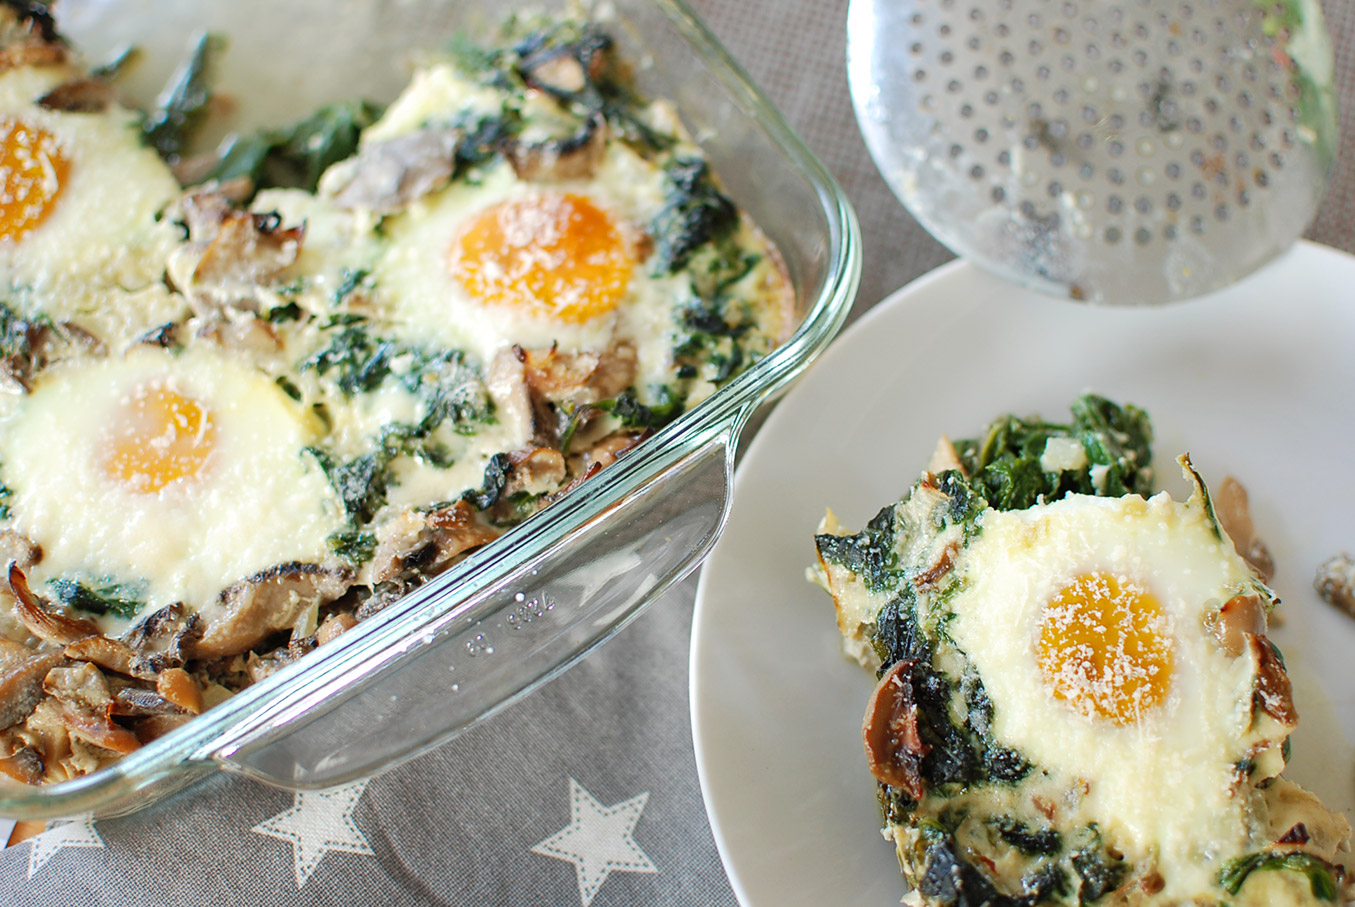 Baked-spinach-and-eggs-2